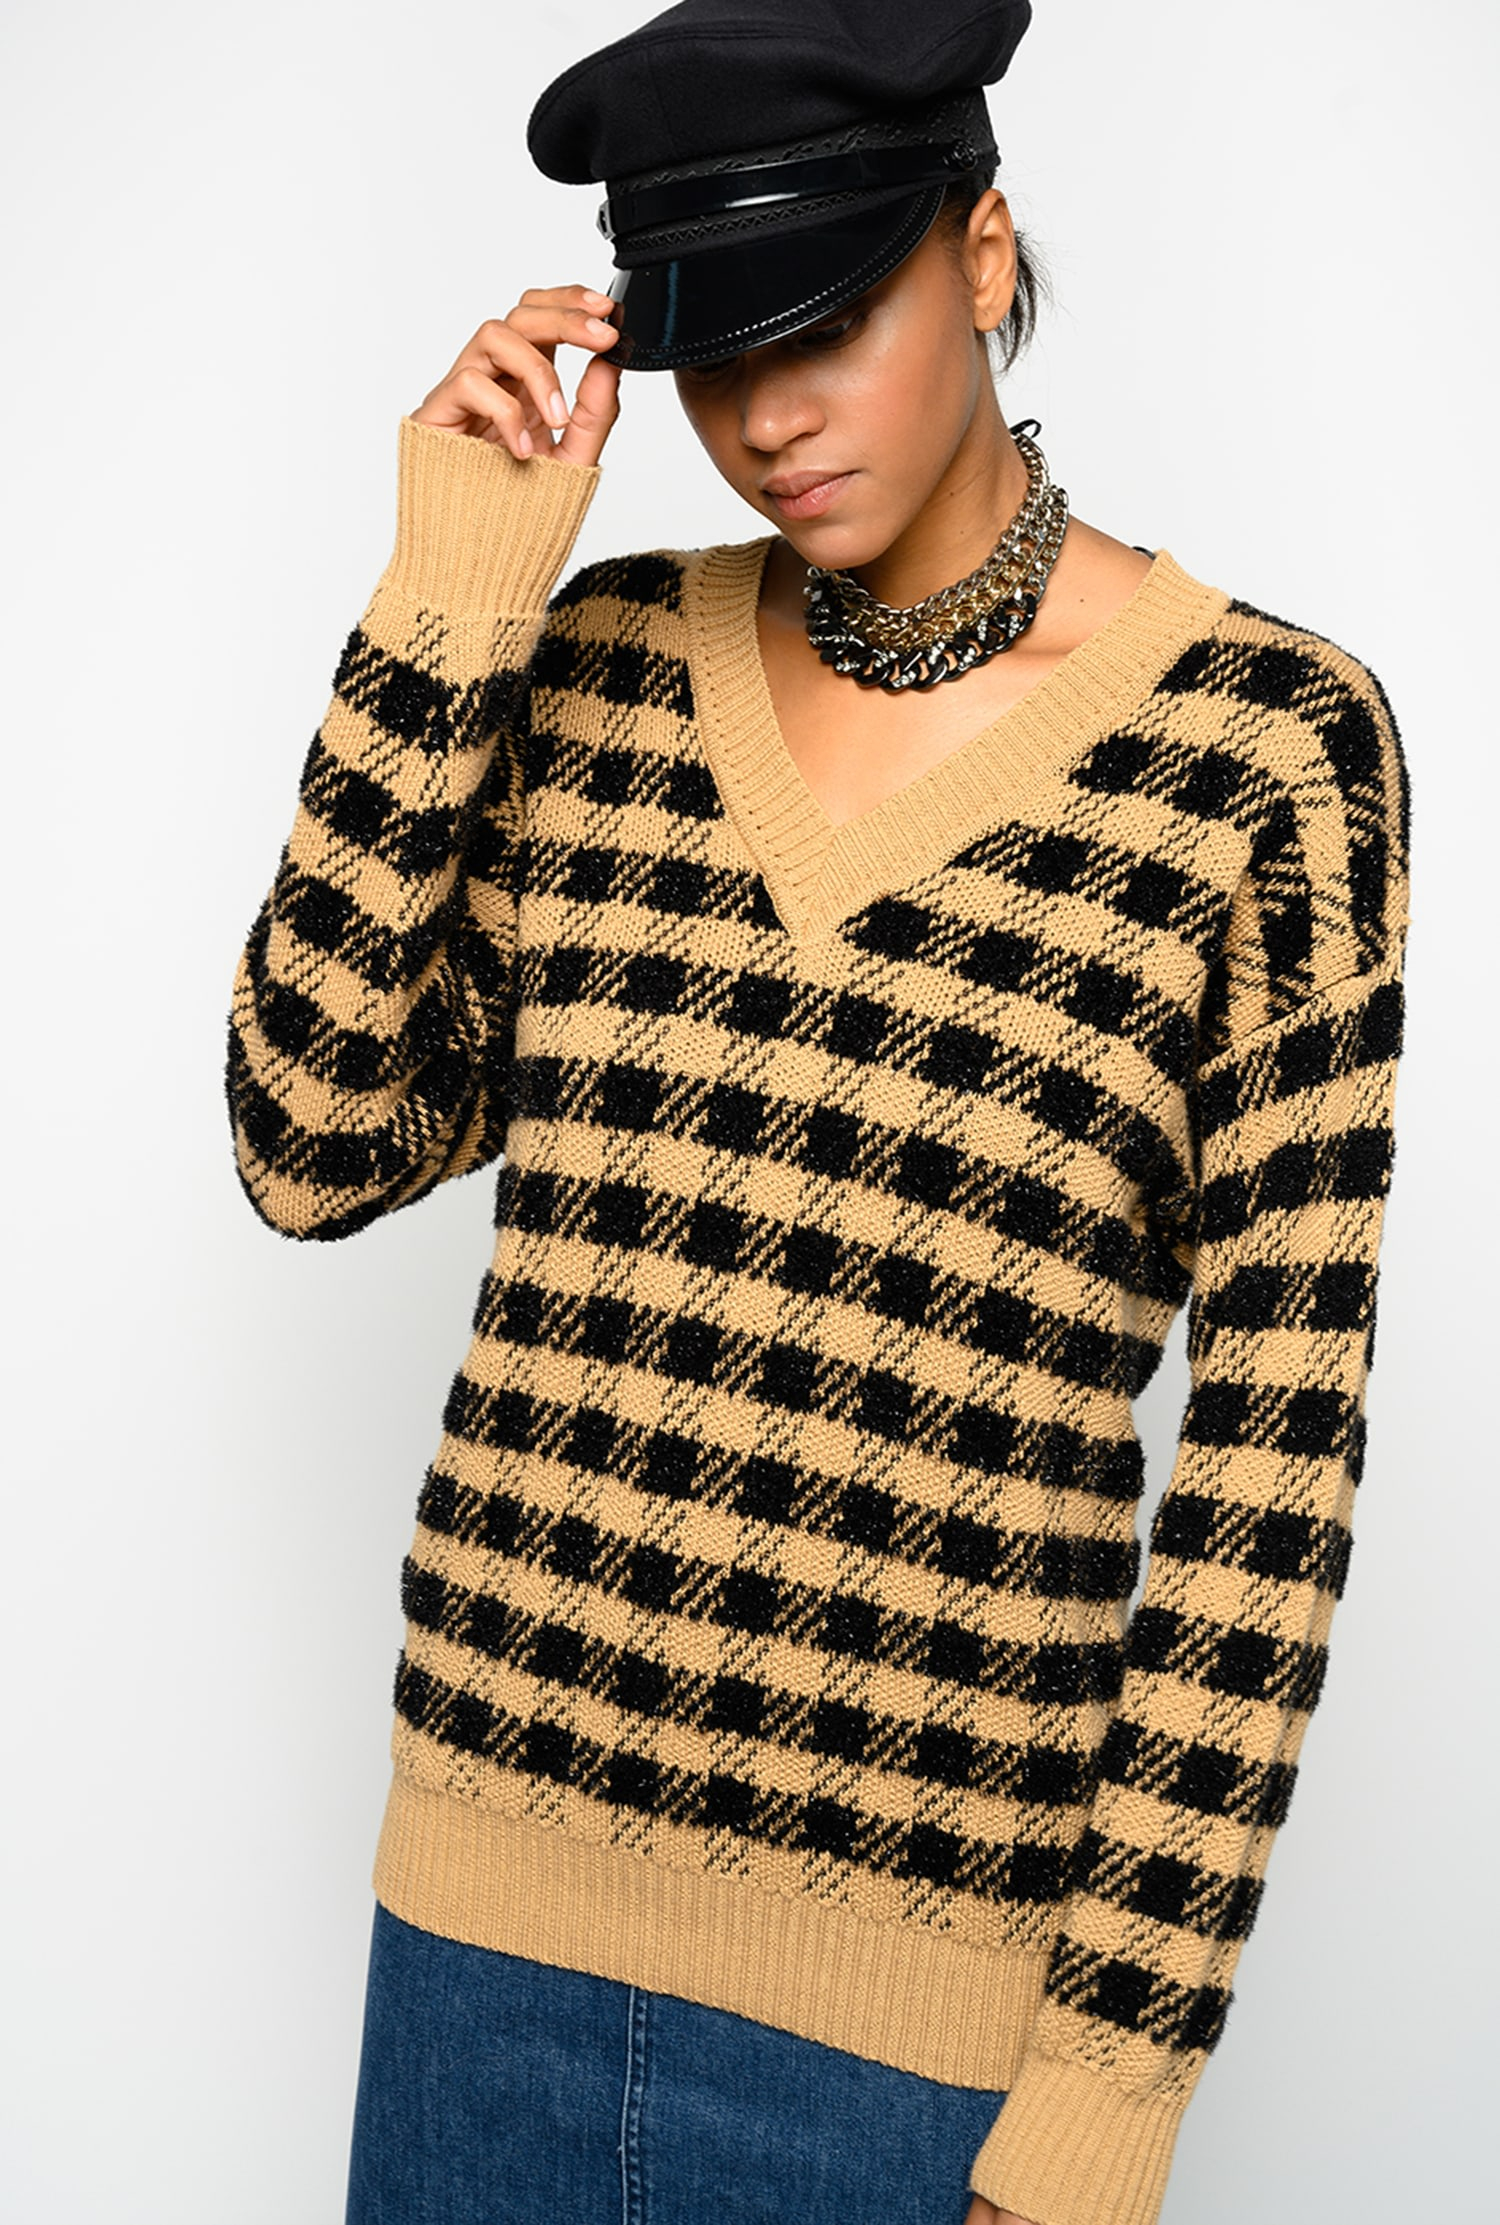 SHOPPING ON LINE PINKO PULLOVER JACQUARD CHECK BELIZE NEW COLLECTION WOMEN'S FALL WINTER 2020/2021